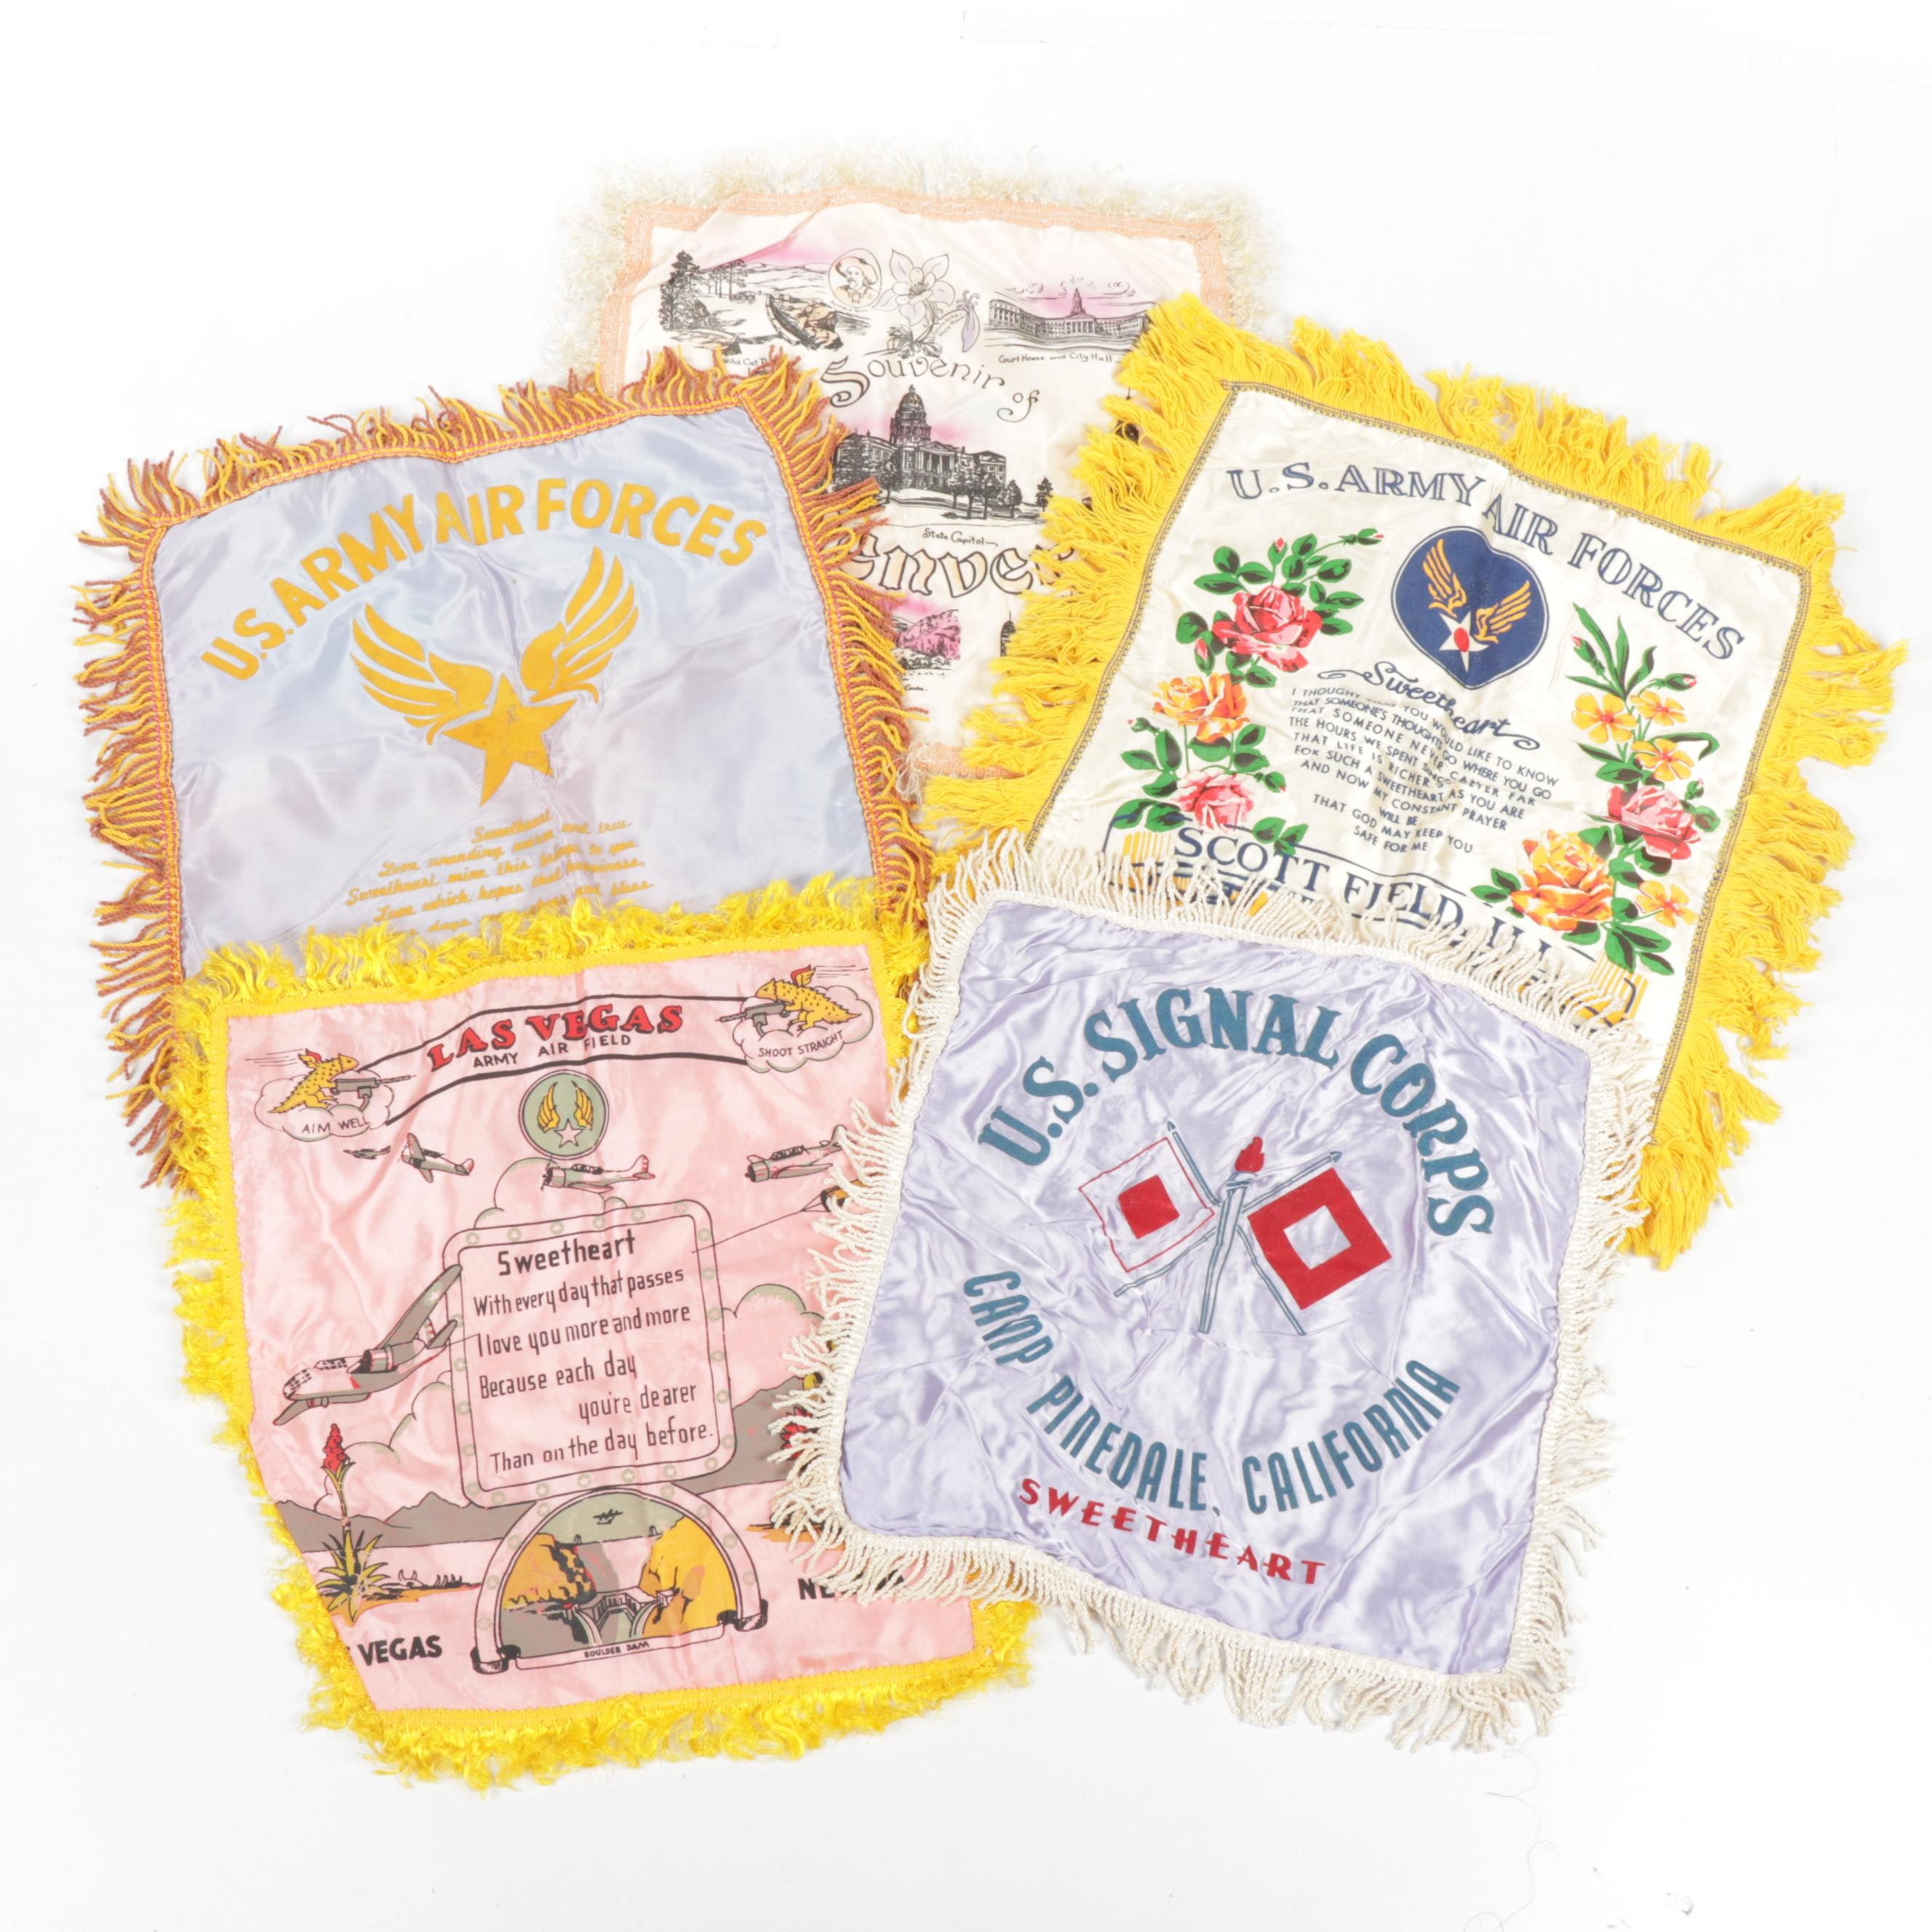 U.S Army and Air Force Sweetheart Pillow Linens